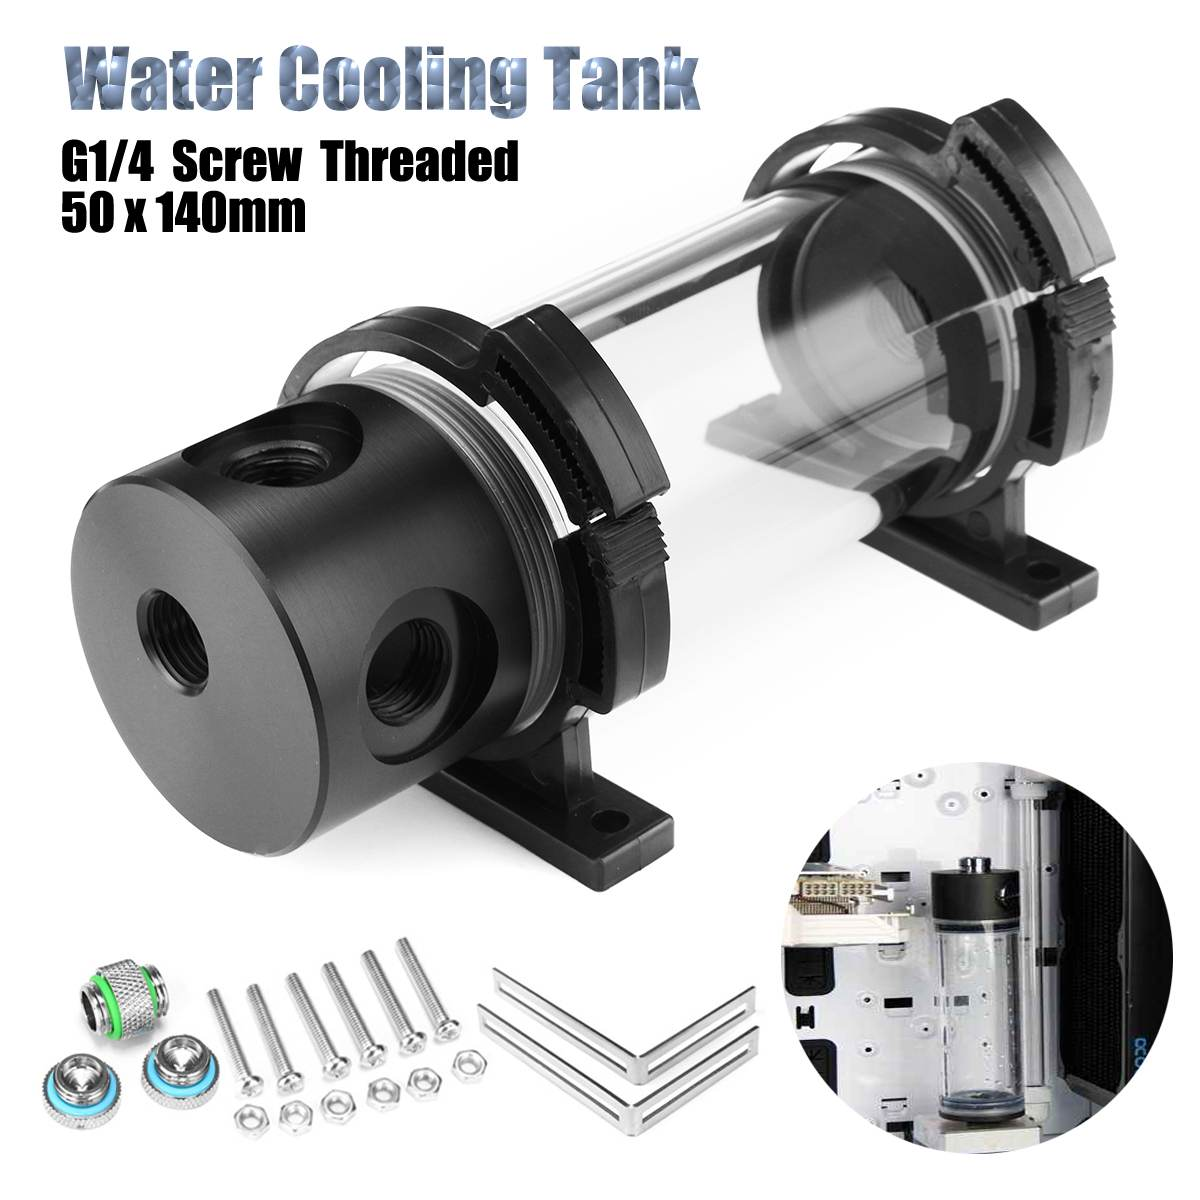 50mm X 140mm Water Cooling Tank G1/4 Thread Cylinder Reservoir Tank Cooler Set For PC Liquid Cooling Tool With L Shape Buckle